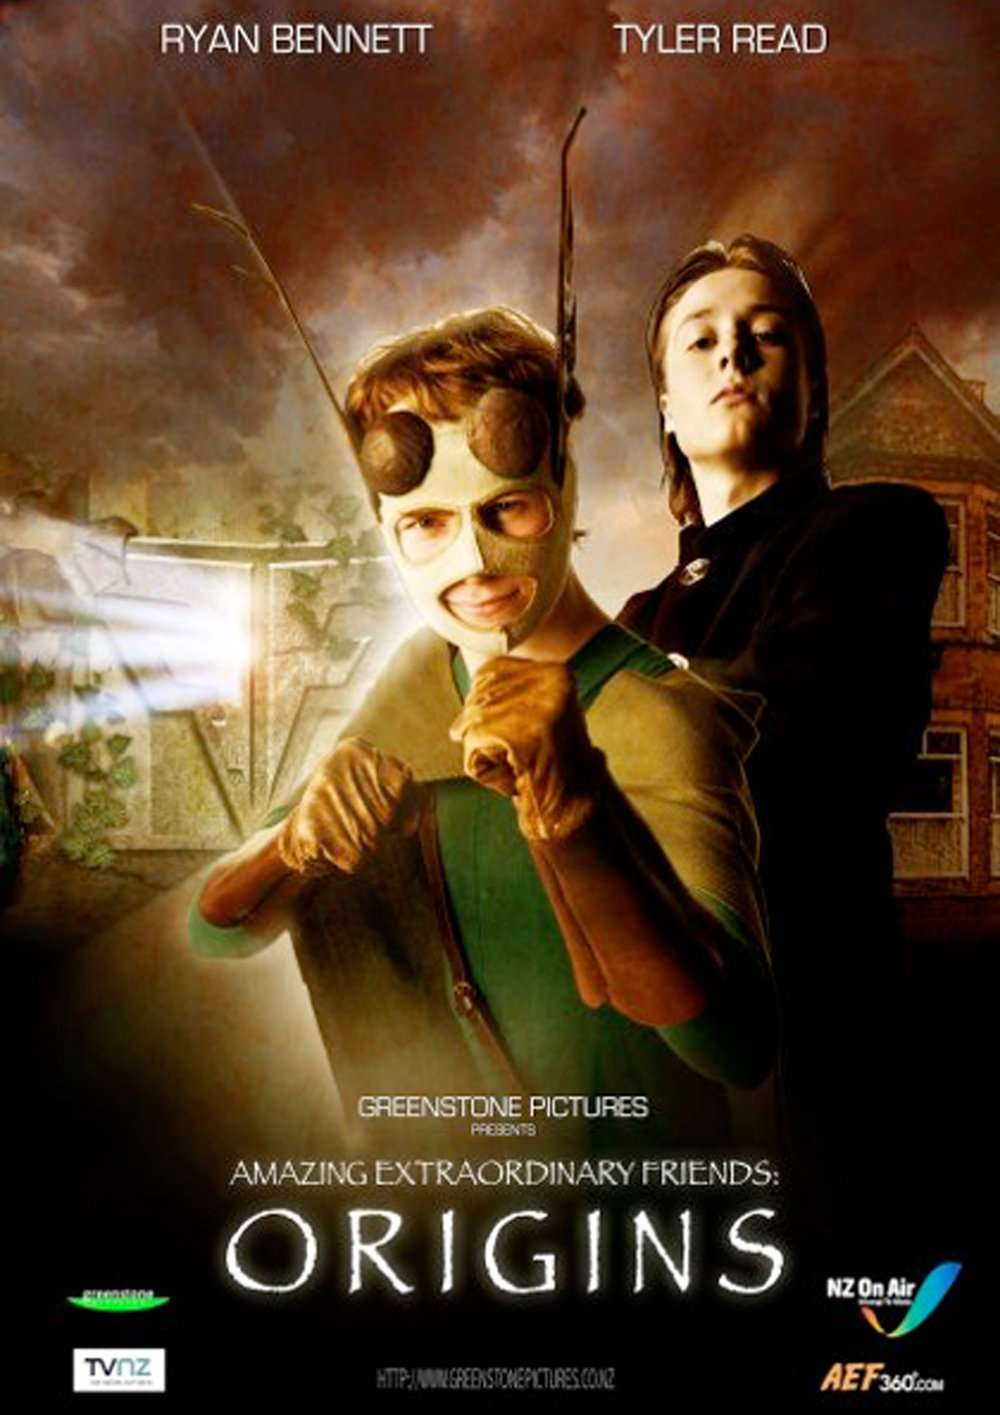 AEF: Origins. Web series. (TVNZ OnDemand)   Before they were arch enemies  The Green Termite  and  Renfield  were childhood friends. Origins tells the story of how love tore them apart.